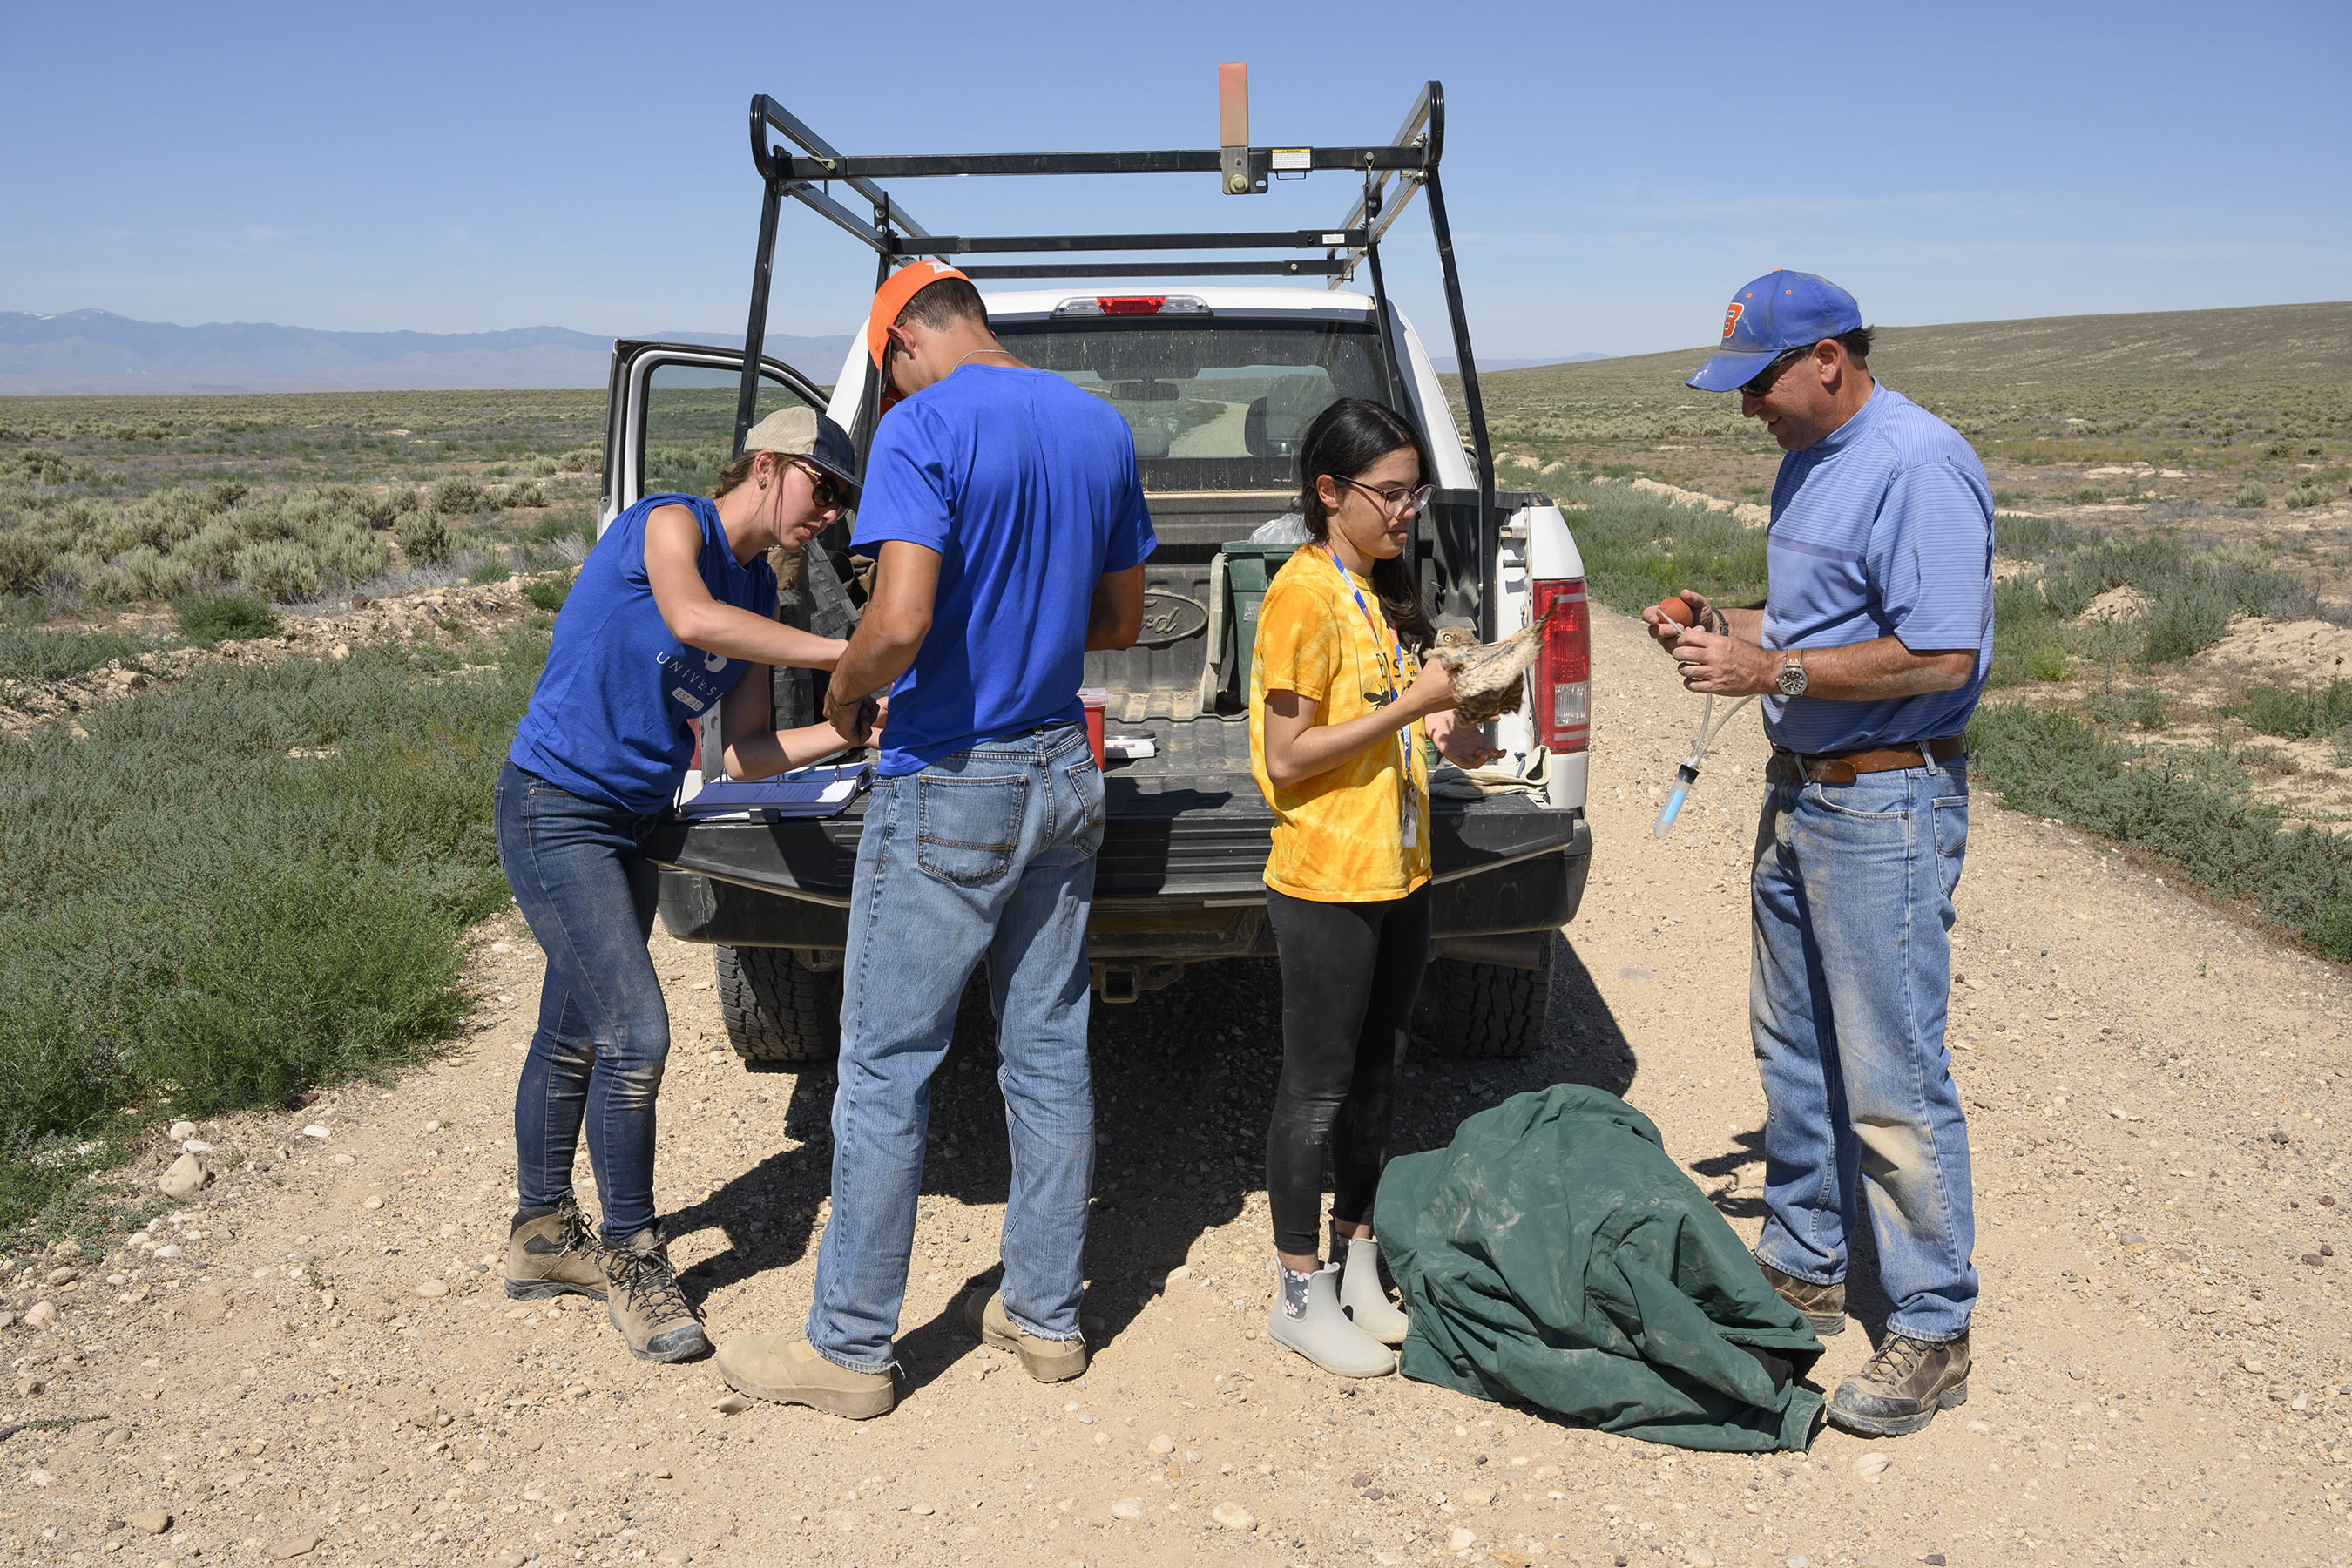 Professor Belthoff and three students work behind pick up truck